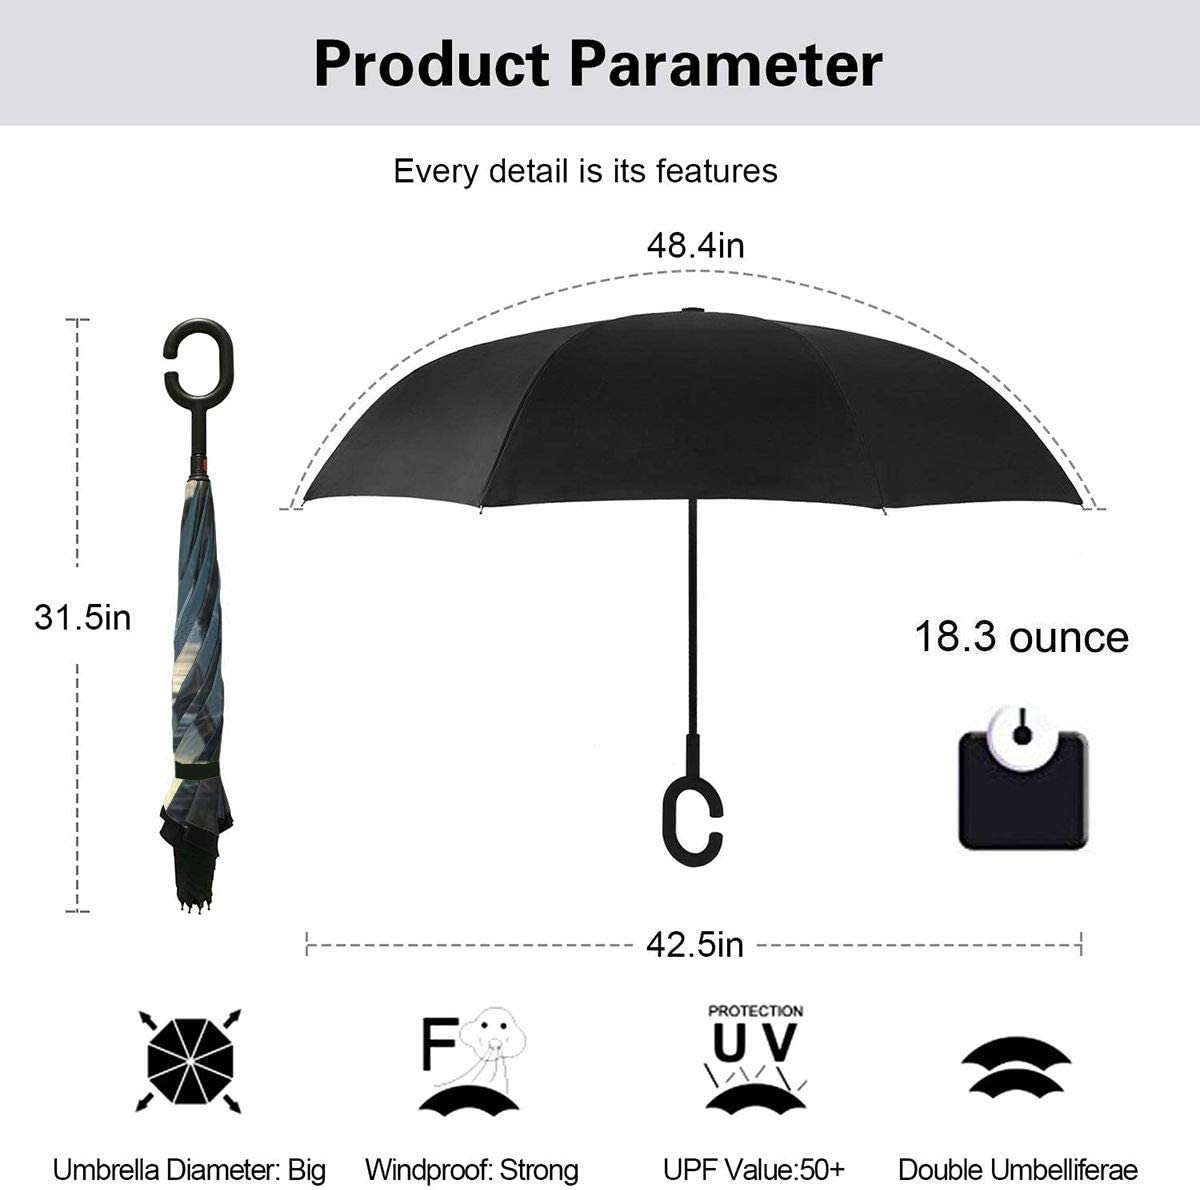 Windproof And Rainproof Double Folding Inverted Umbrella With C-Shaped Handle UV Protection Inverted Folding Umbrellas Sci-fi Movie Mandalorian Car Reverse Umbrella